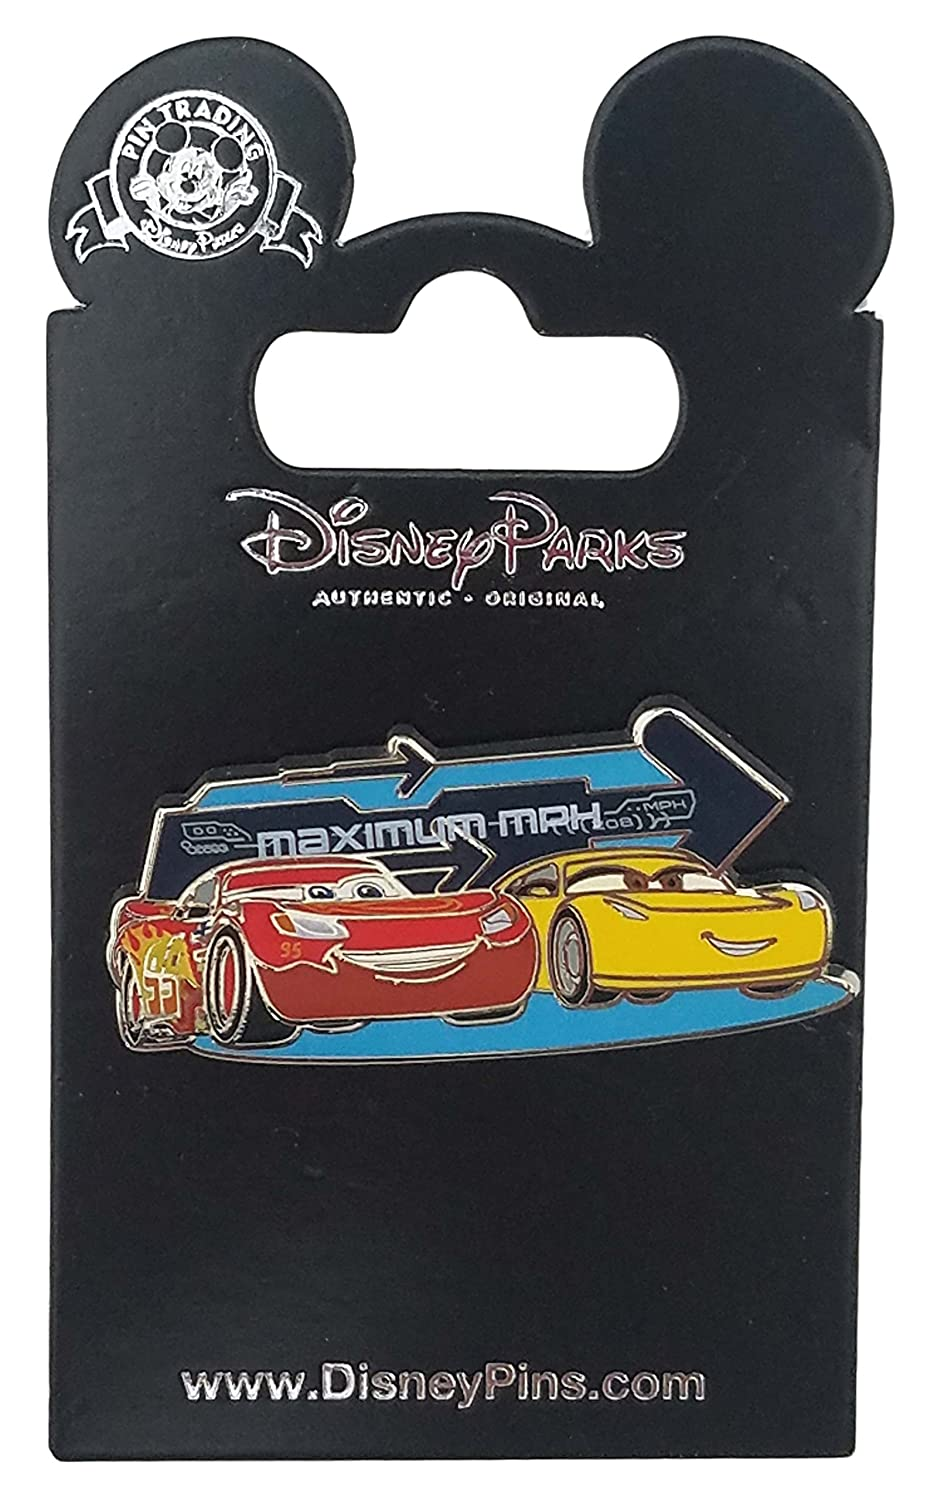 Disney Pin - Pixar Cars 3 - McQueen and Cruz Ramirez Maximum MPH